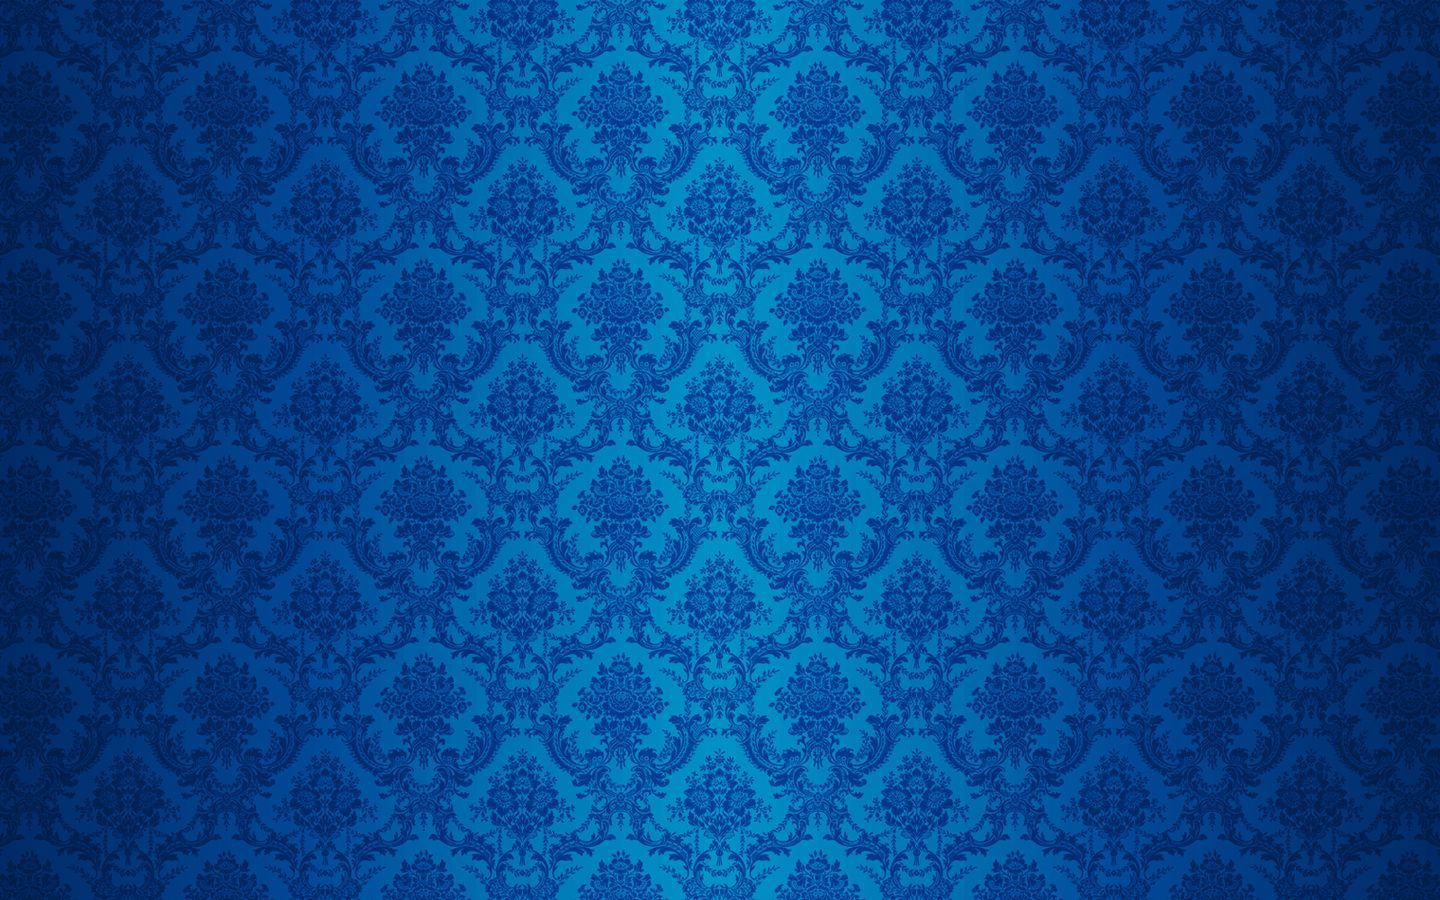 Royal Blue Texture Wallpapers - Top Free Royal Blue Texture Backgrounds -  WallpaperAccess